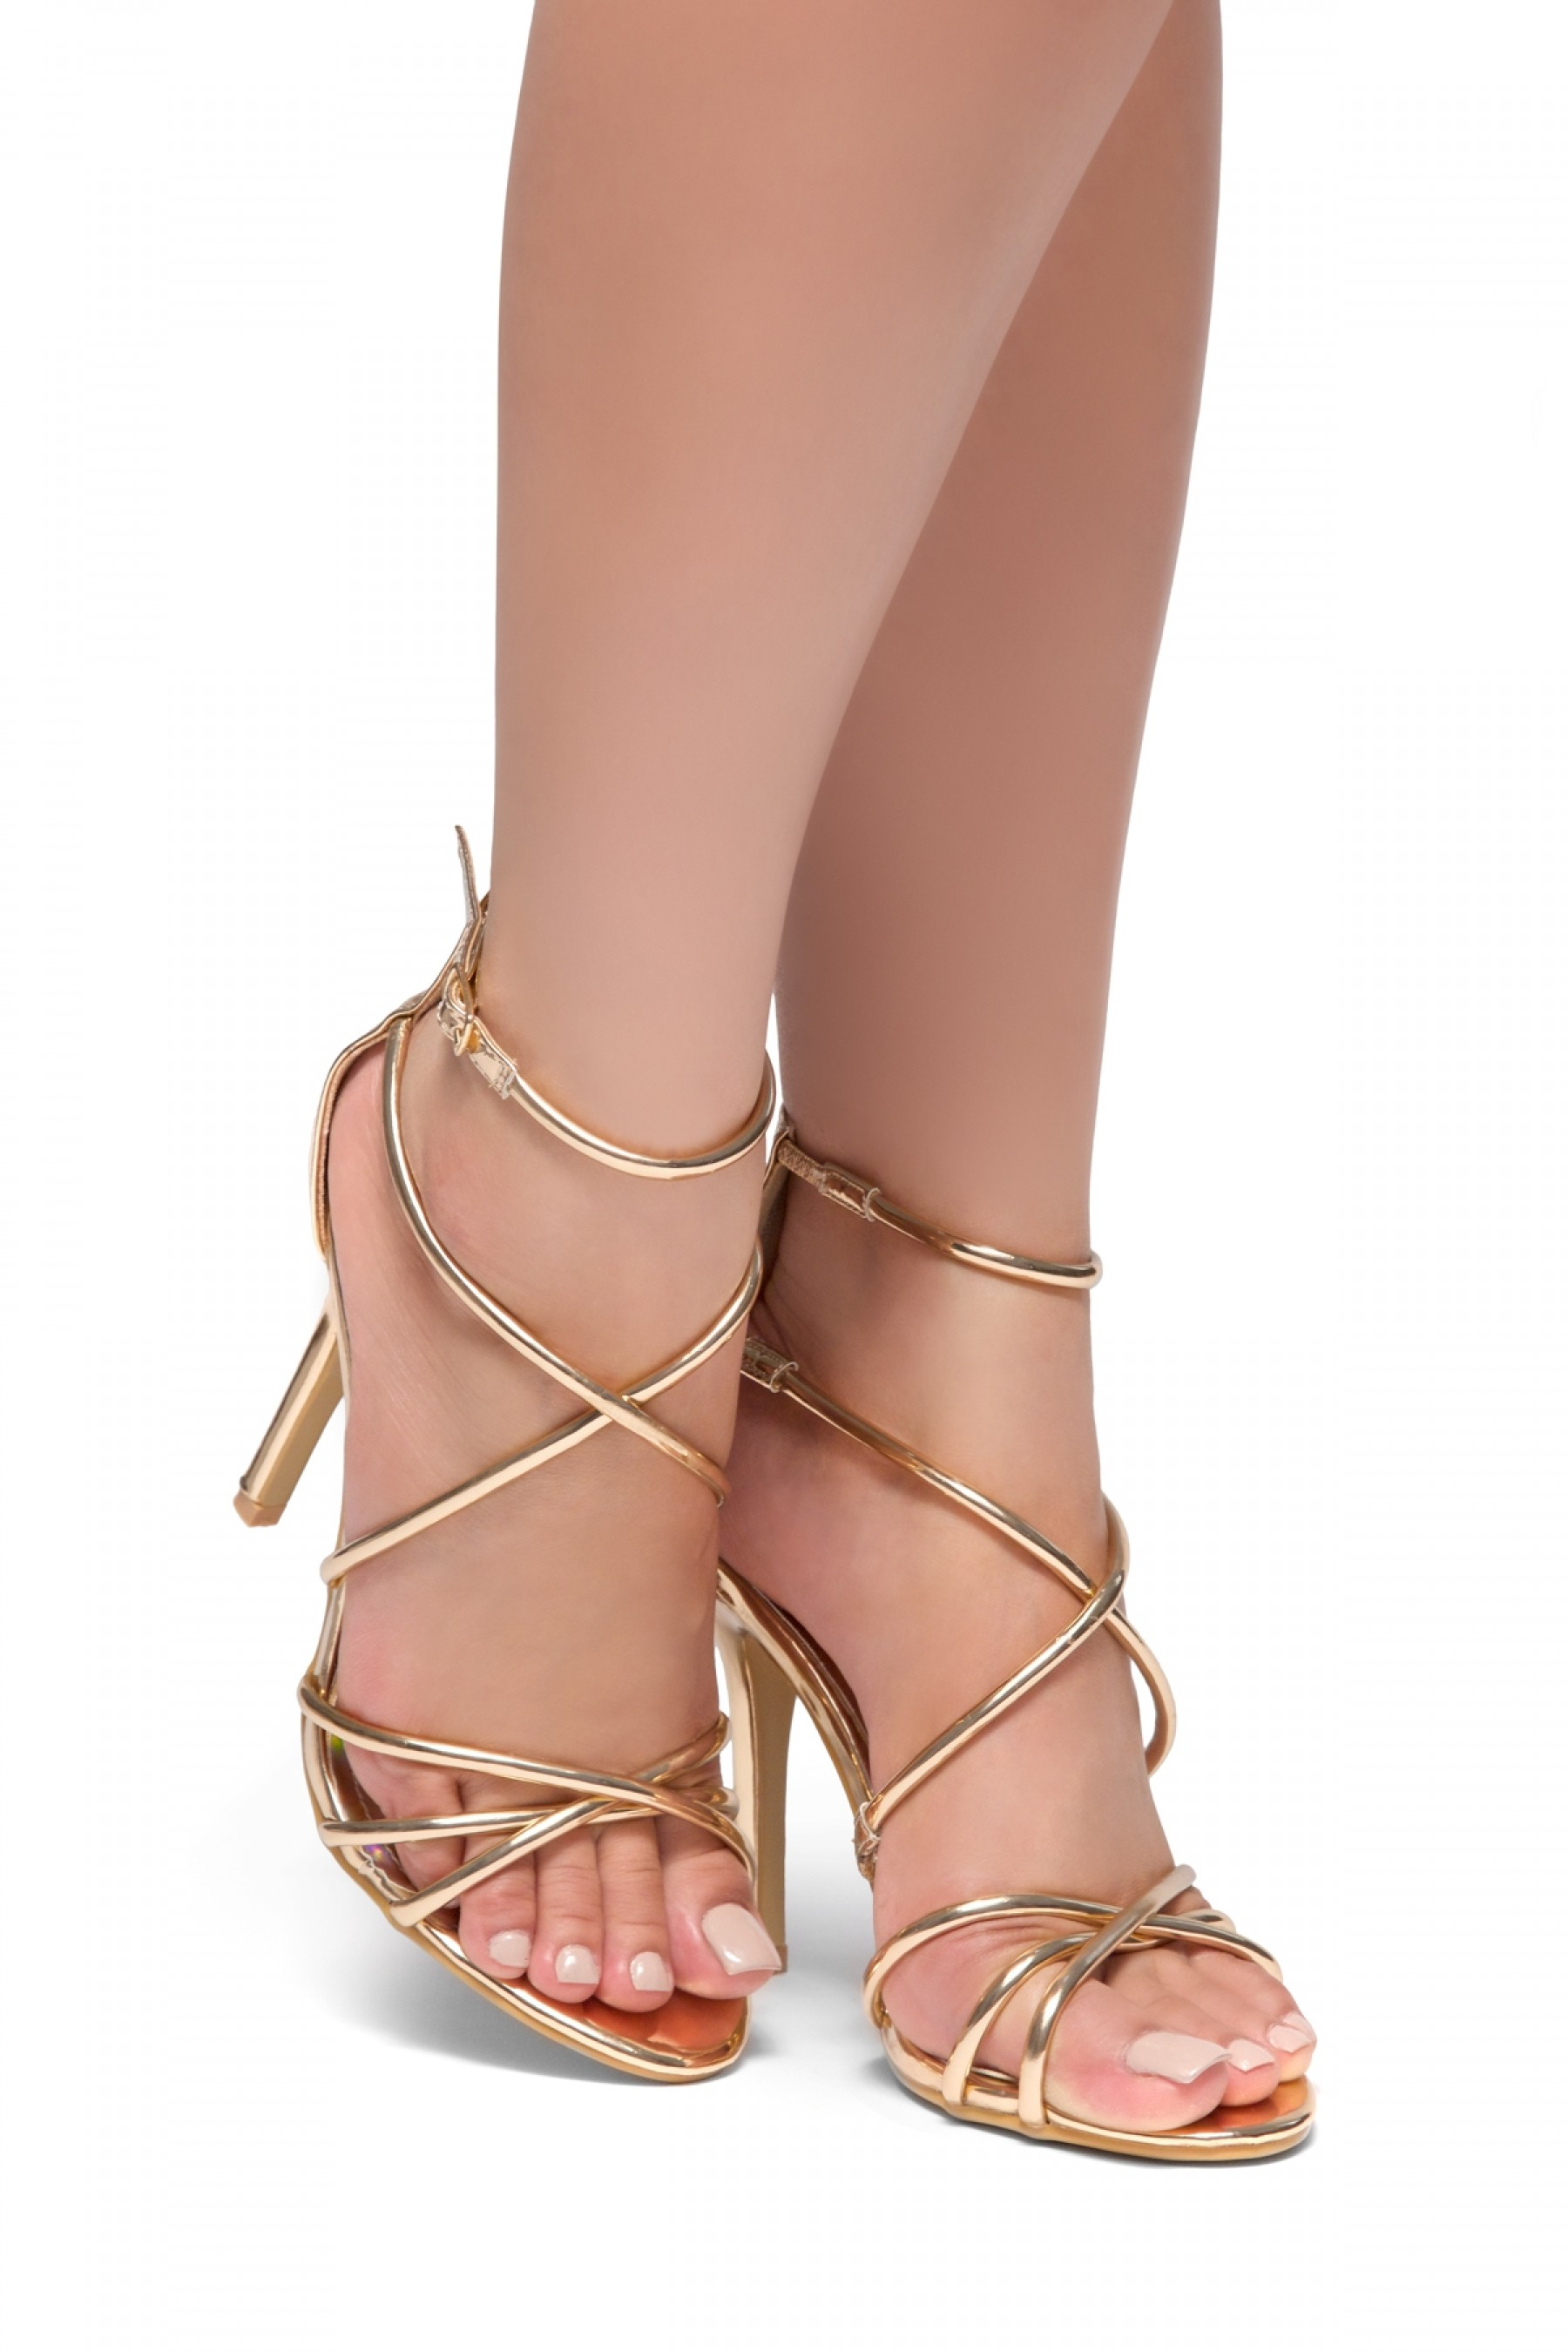 herstyle rose heel with perspex anklet adjustable strap an clear buckle om ankle r gold beautie clr